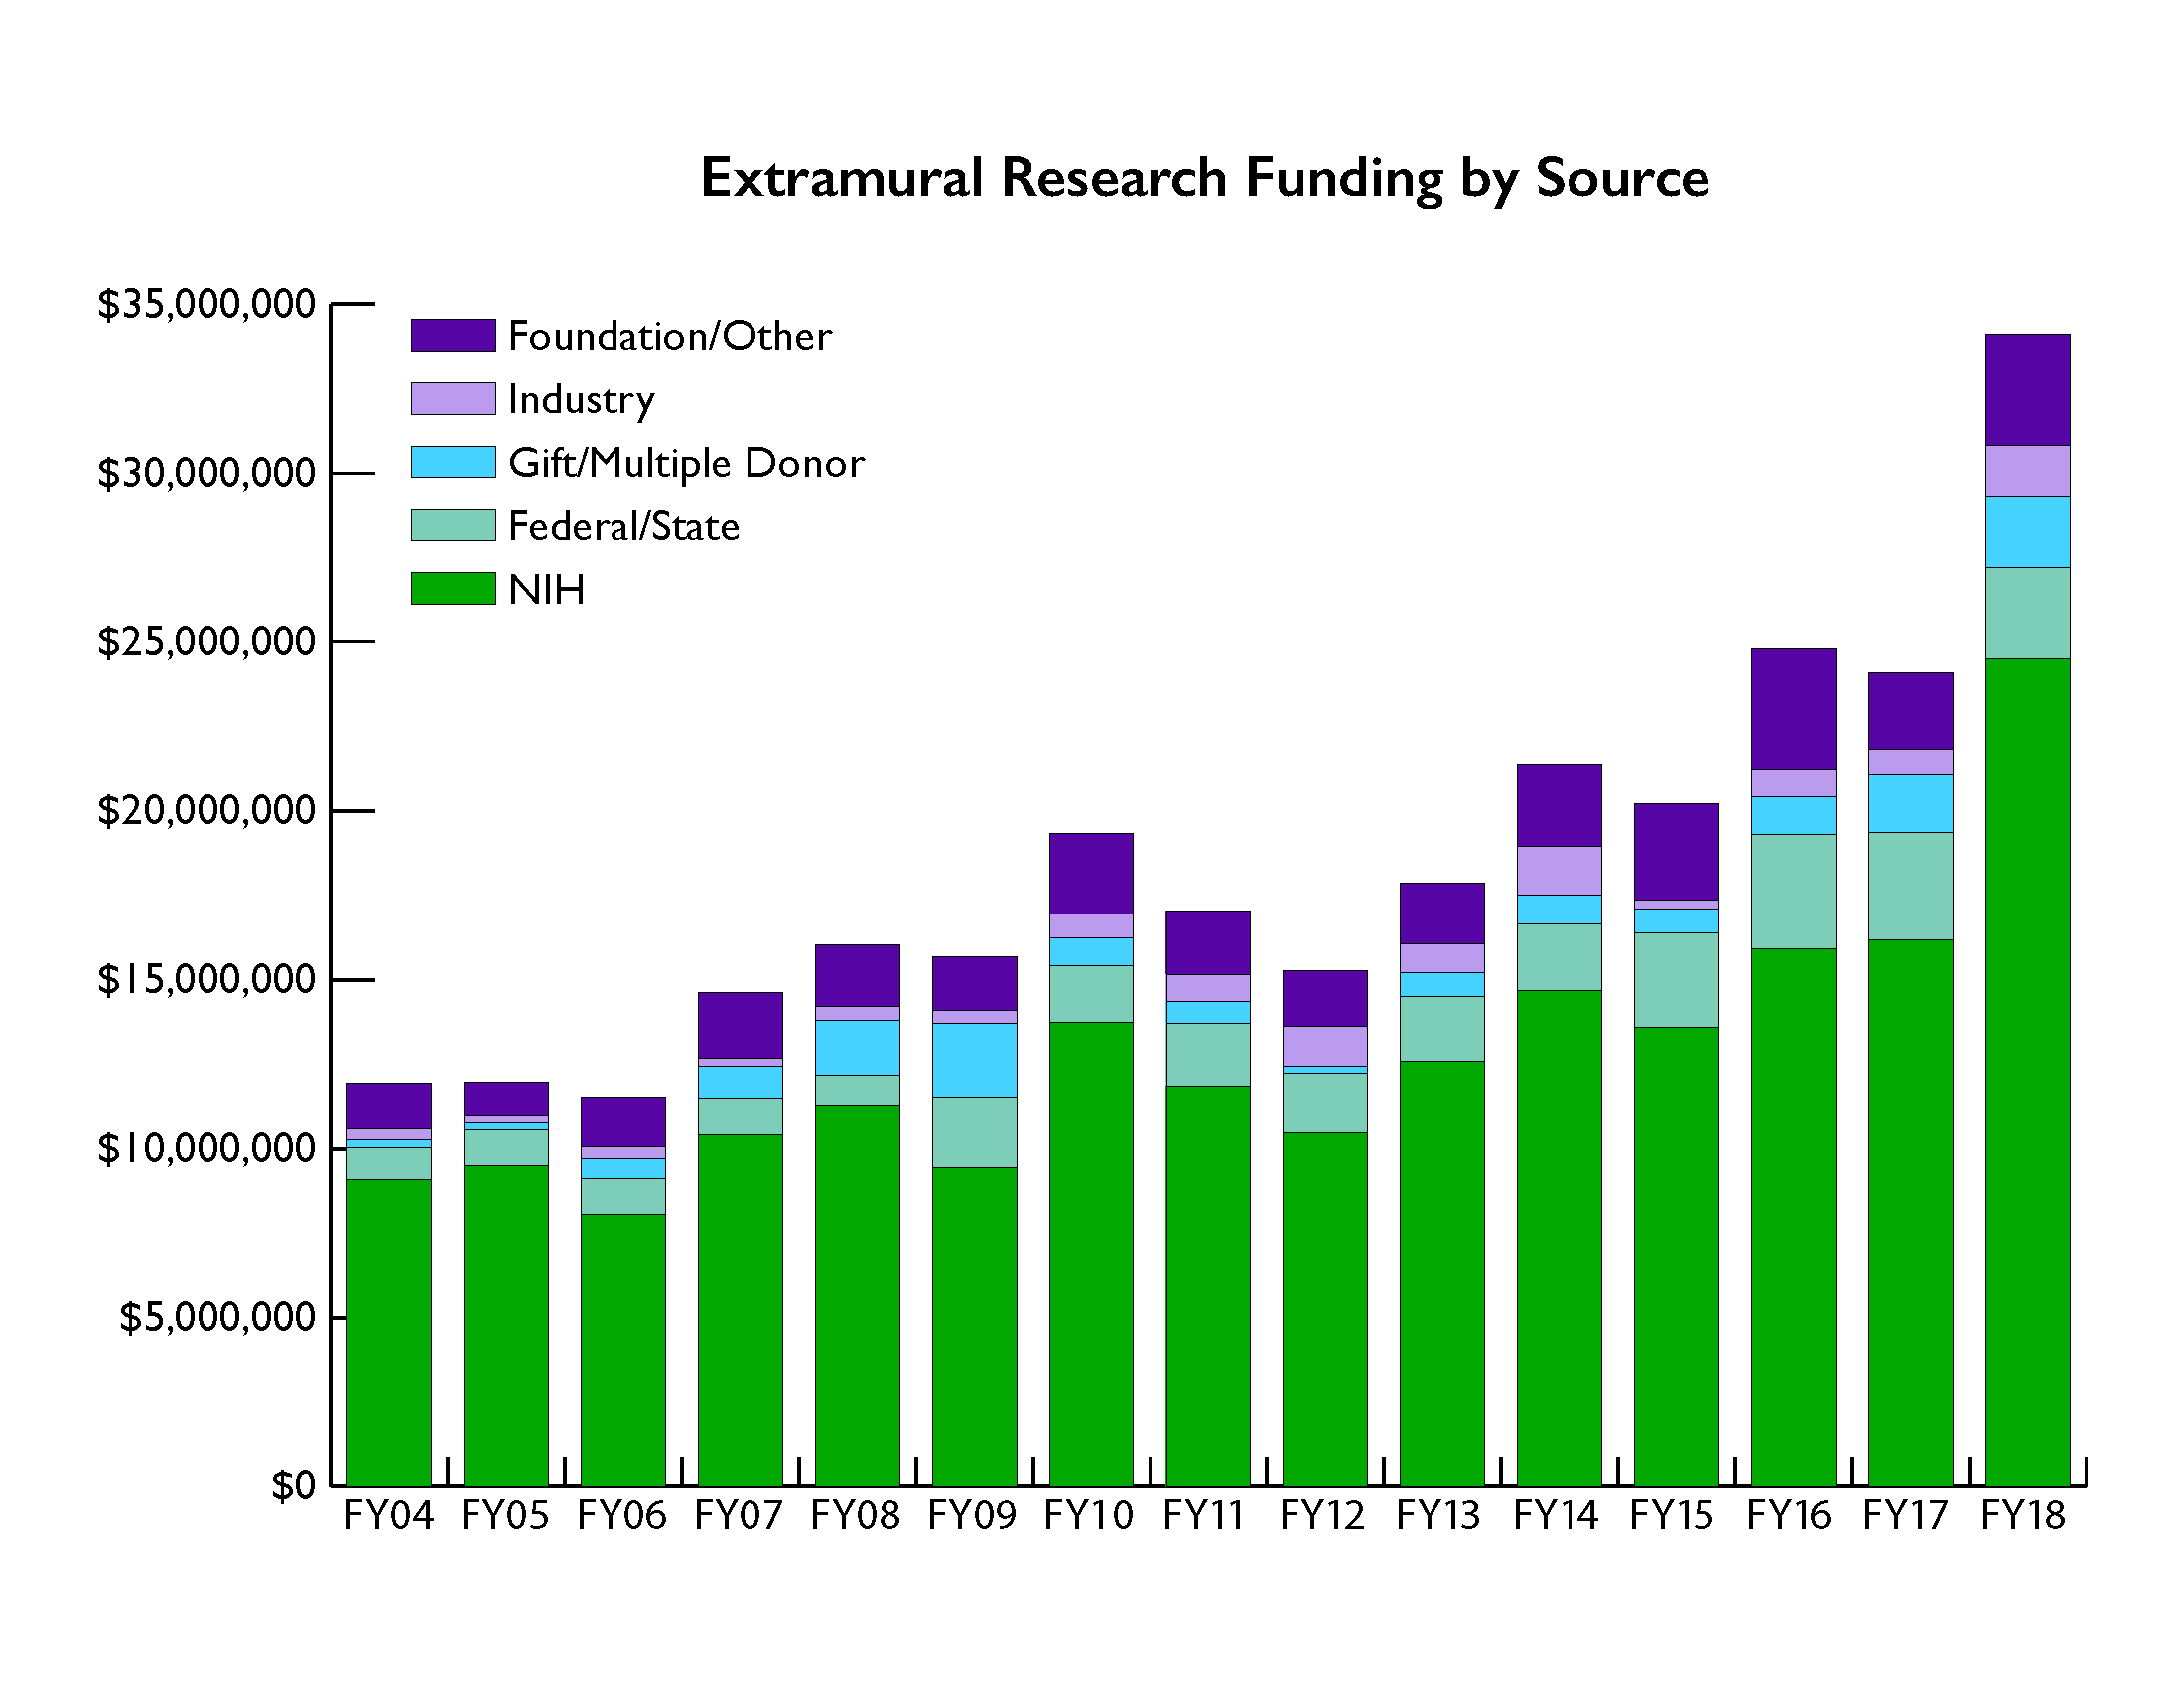 Extramural Research Funding by Source AR 2018